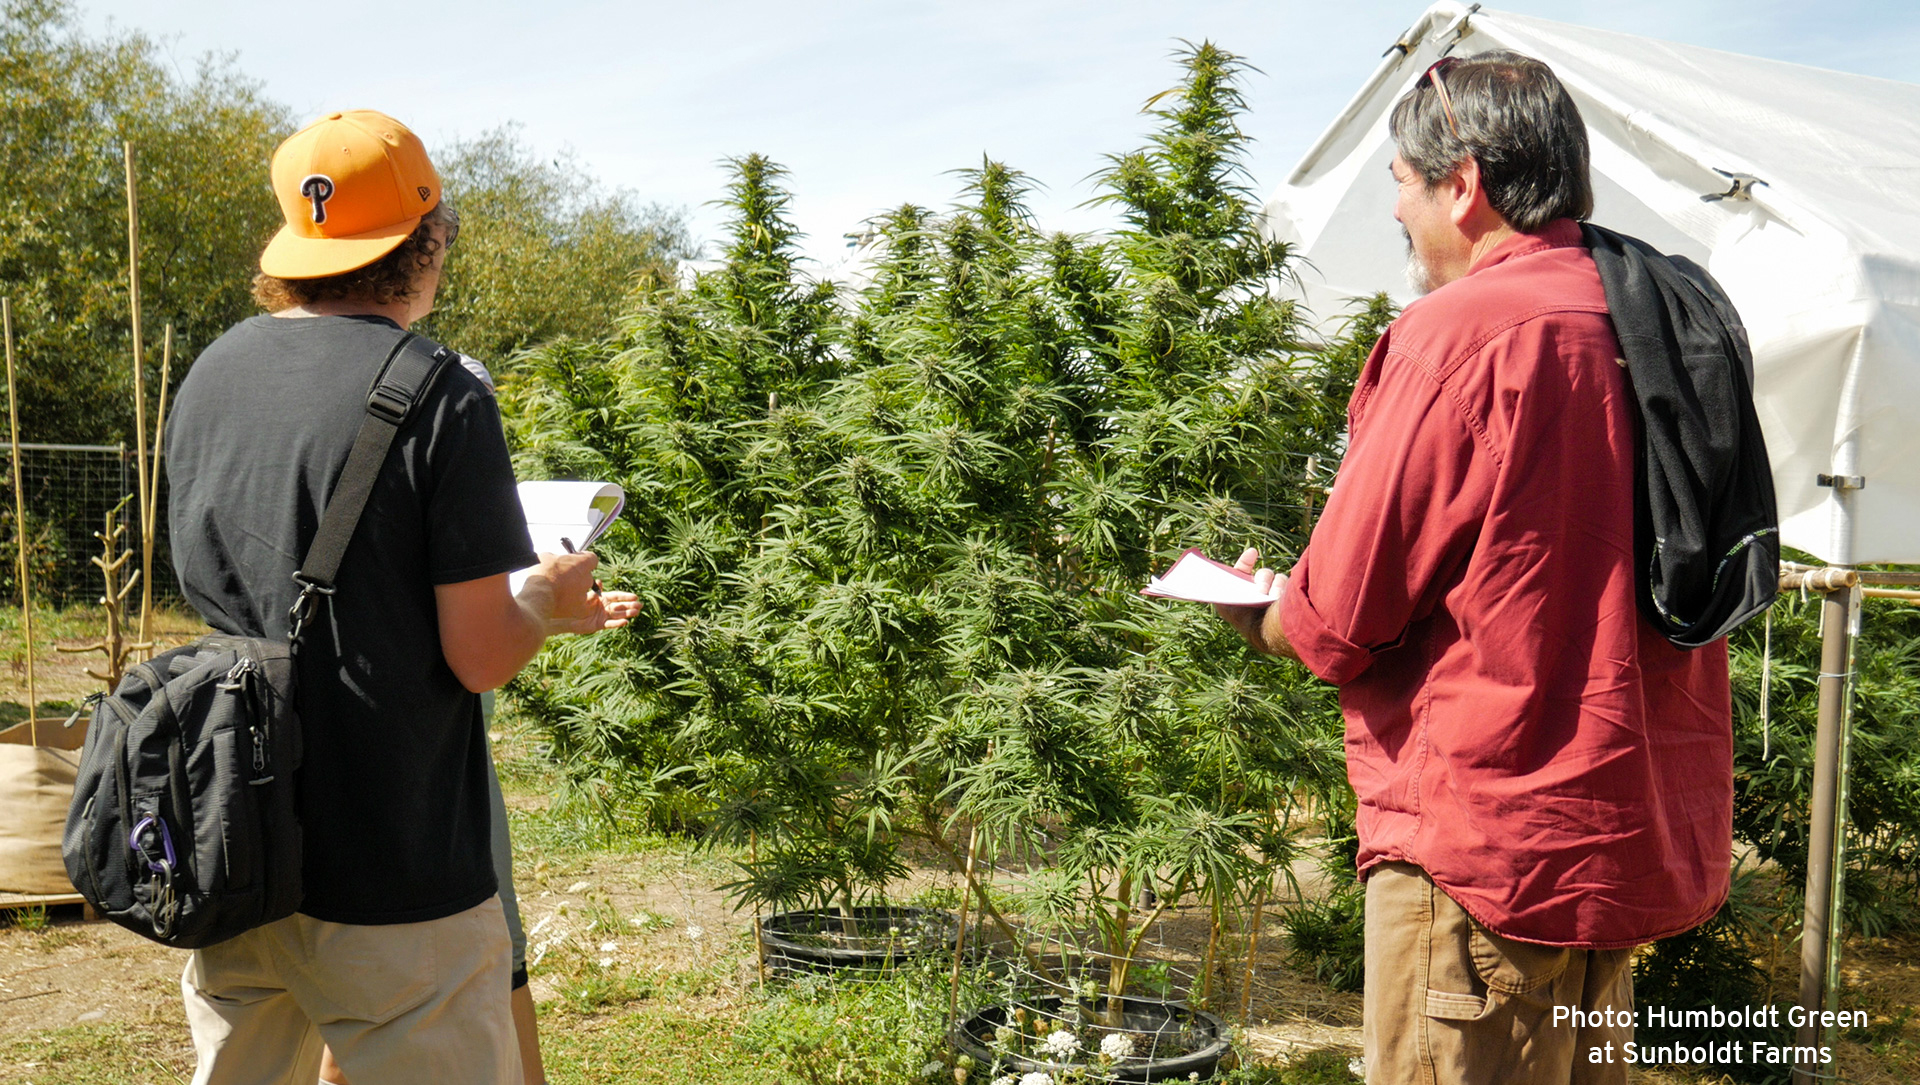 Stephen & Ken doing Care-Ability Standard Work regarding Cannabis Regulations at Sunboldt Farms